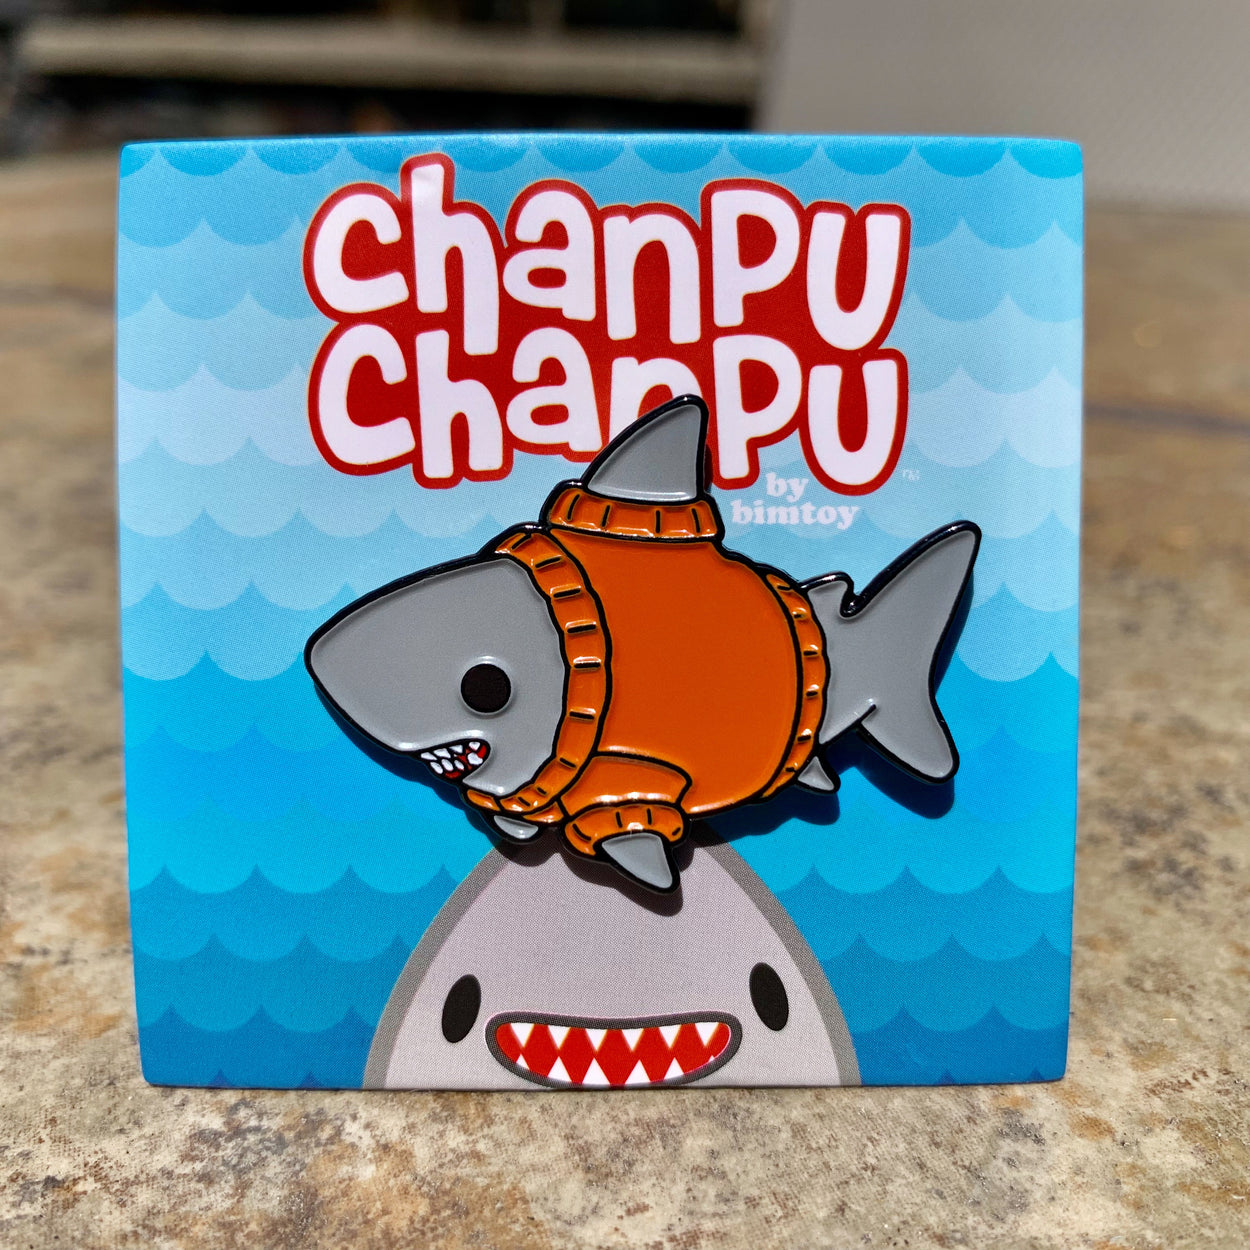 Chanpu Chanpu (Sweater) Enamel Pin